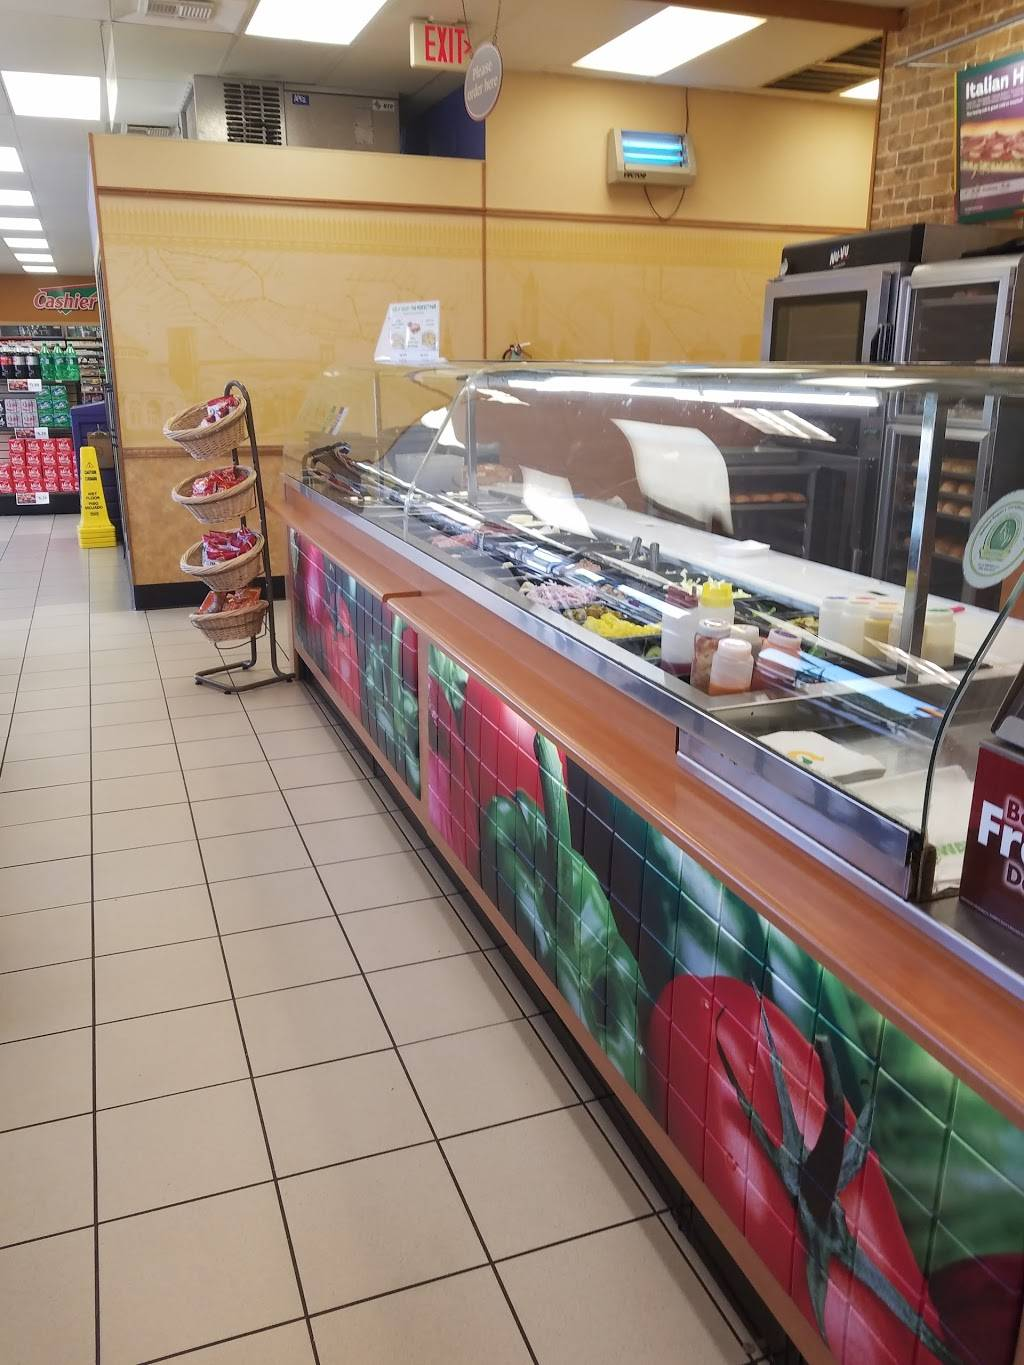 Subway | meal takeaway | 3005 Loreauville Rd, New Iberia, LA 70560, USA | 3375600171 OR +1 337-560-0171